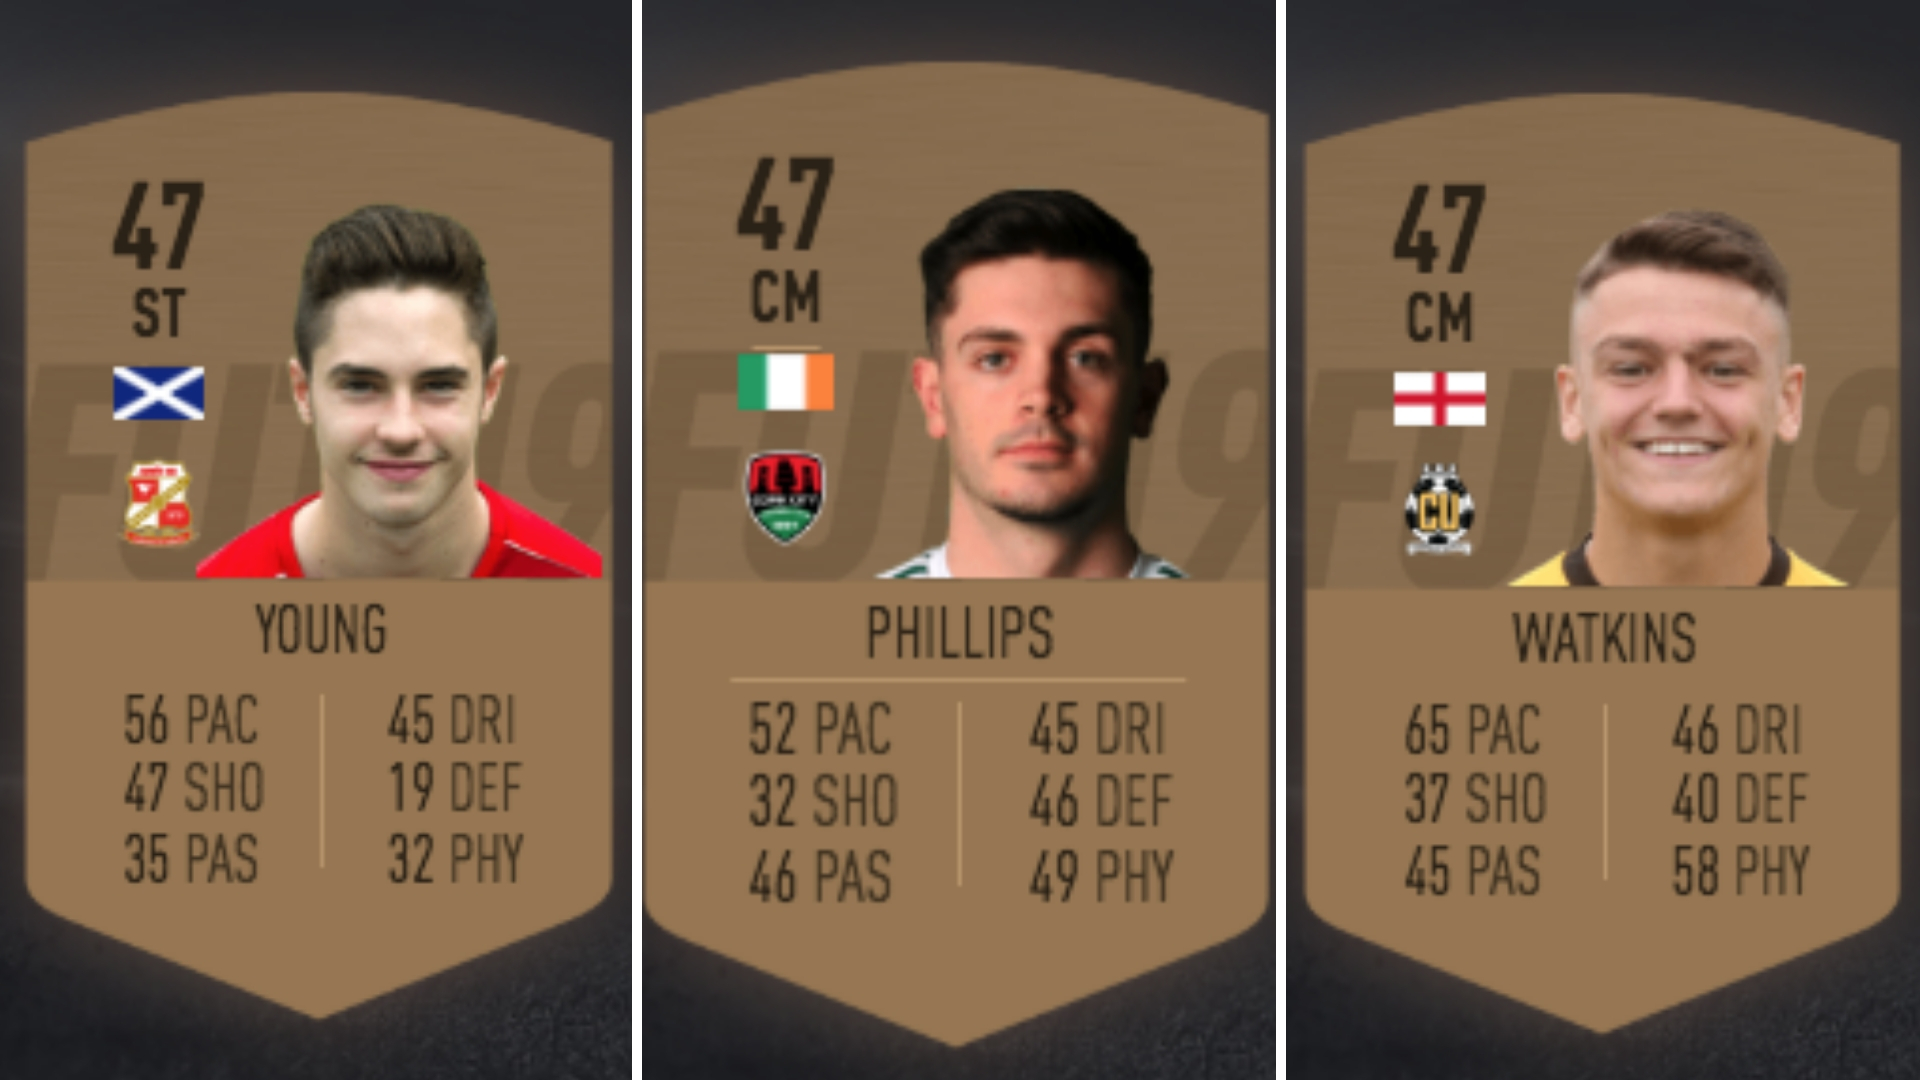 FIFA 19 Player Builds Lowest-Rated Ultimate Team With 100 Per Cent Chemistry